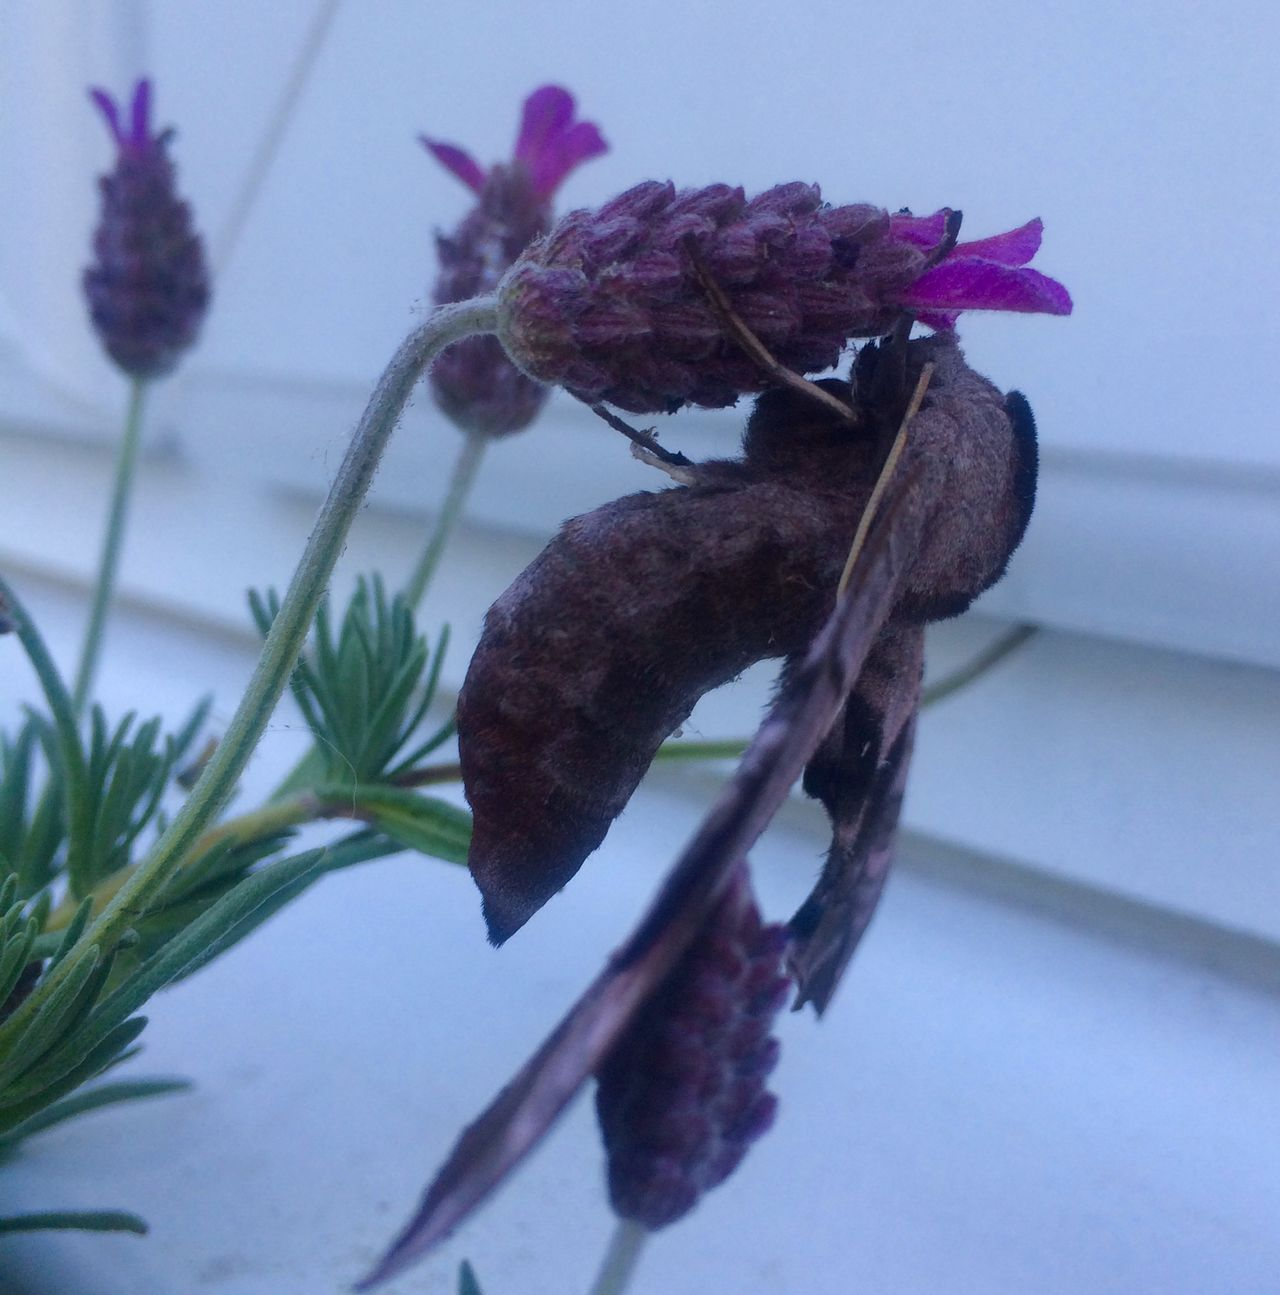 Beauty In Nature Close-up Flower Insect Lavender Moth Nature No People Outdoors Plant Purple